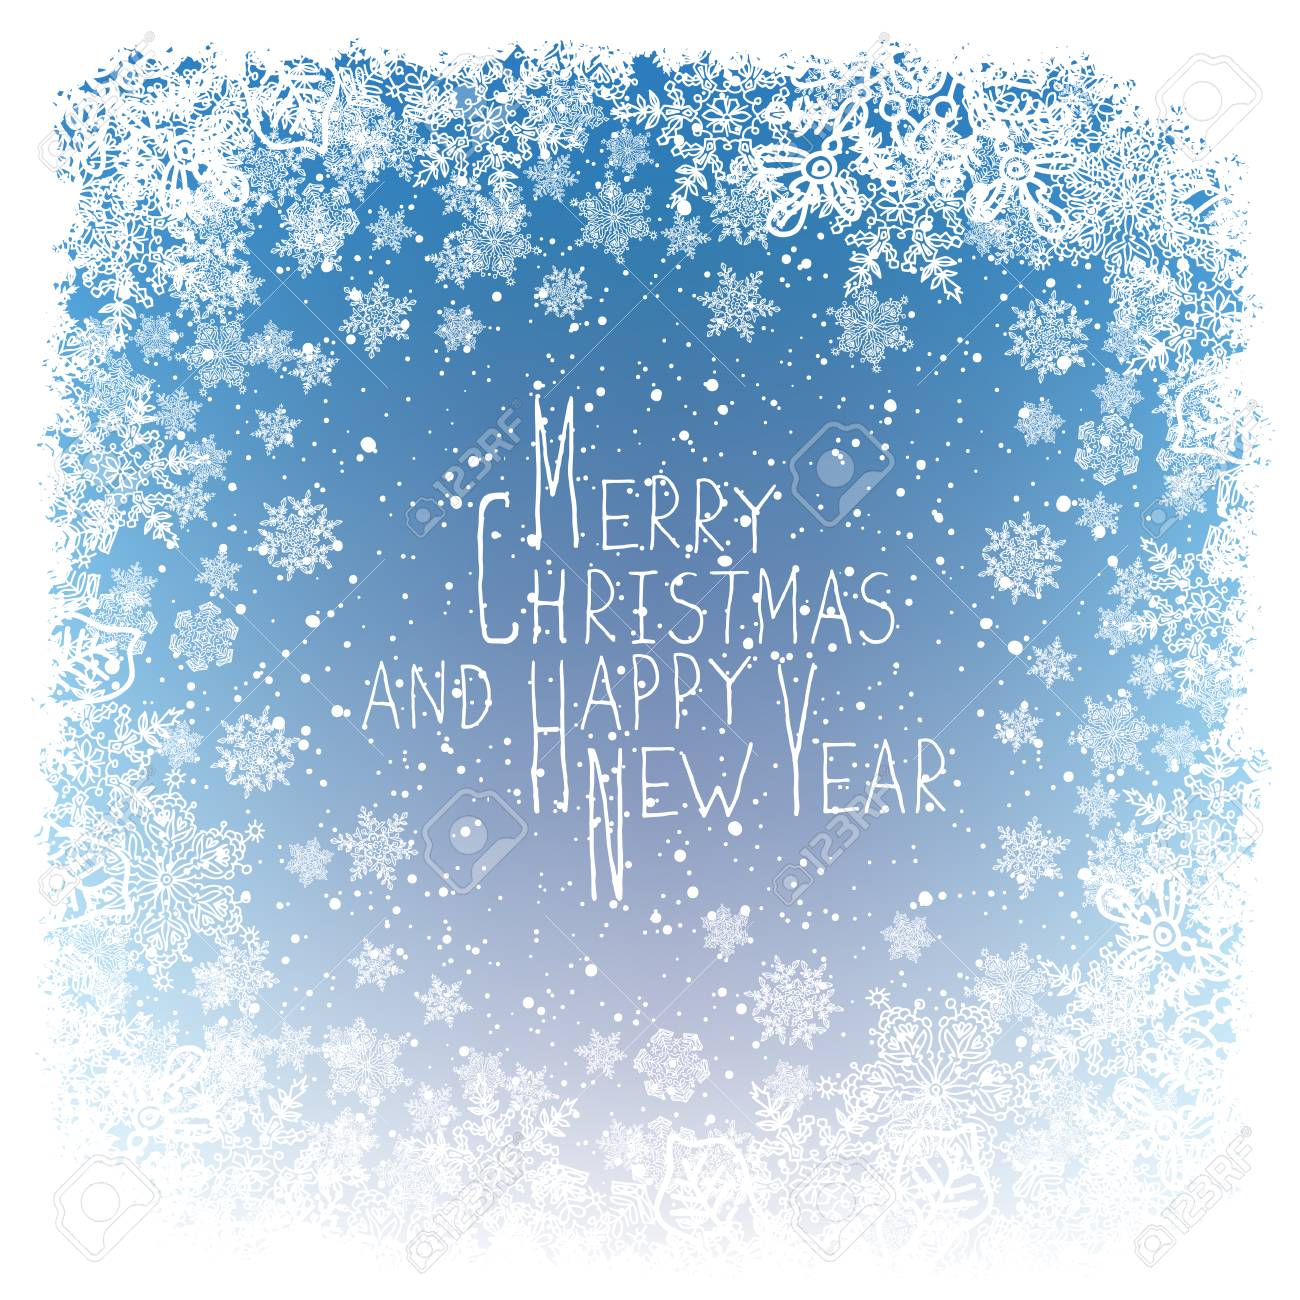 merry christmas greeting new year postcard design frost ornament border and snowflakes blue